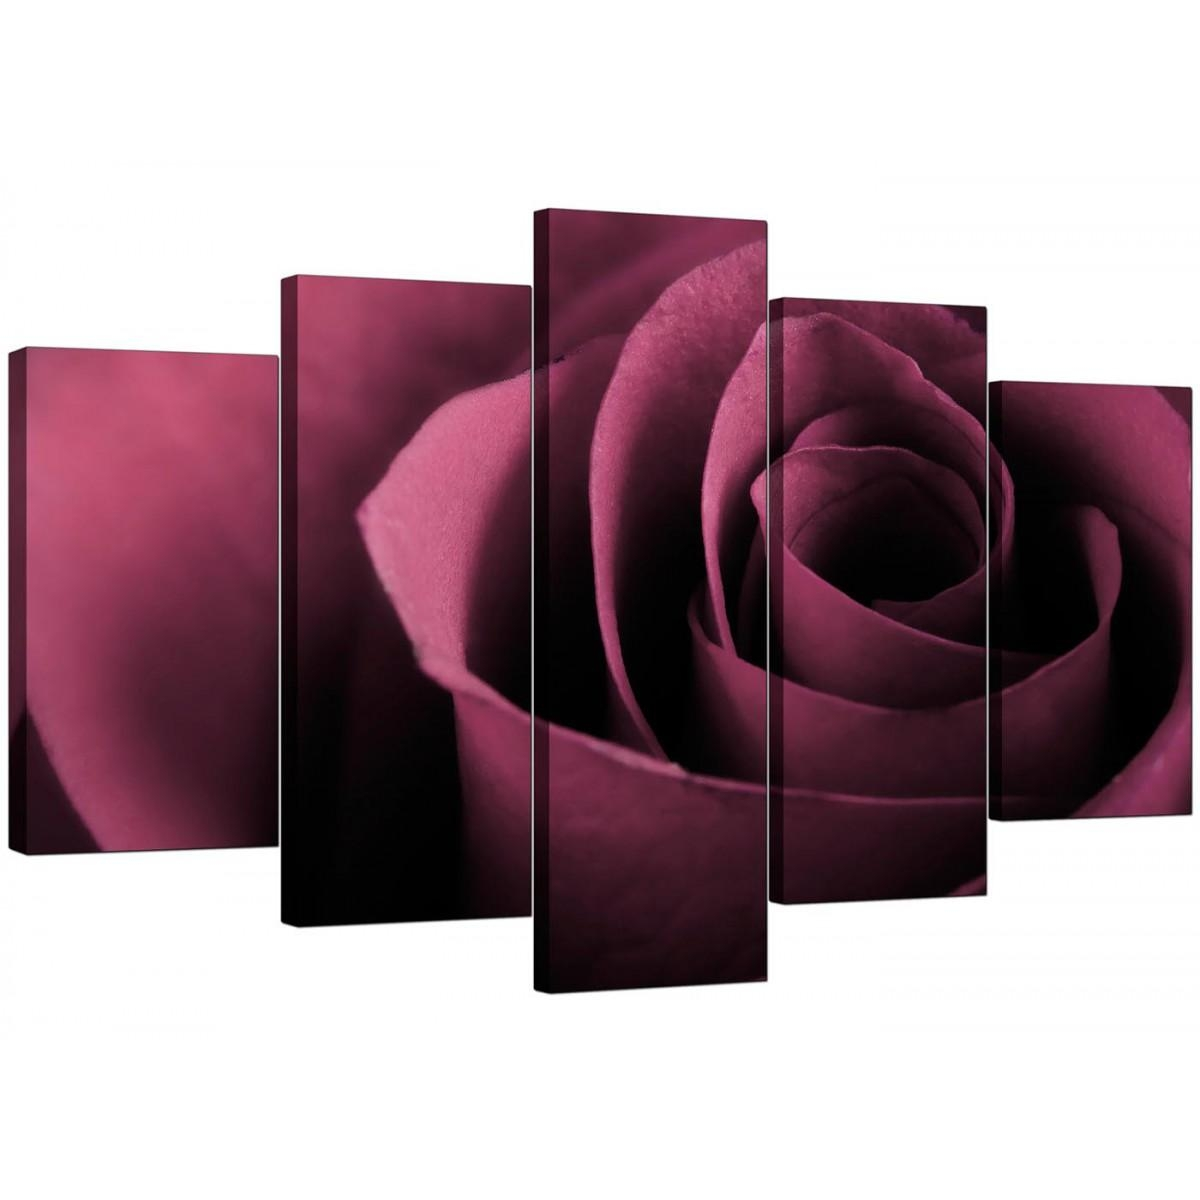 Extra Large Rose Canvas Wall Art Five Piece In Plum Throughout Plum Coloured Wall Art (Image 10 of 20)